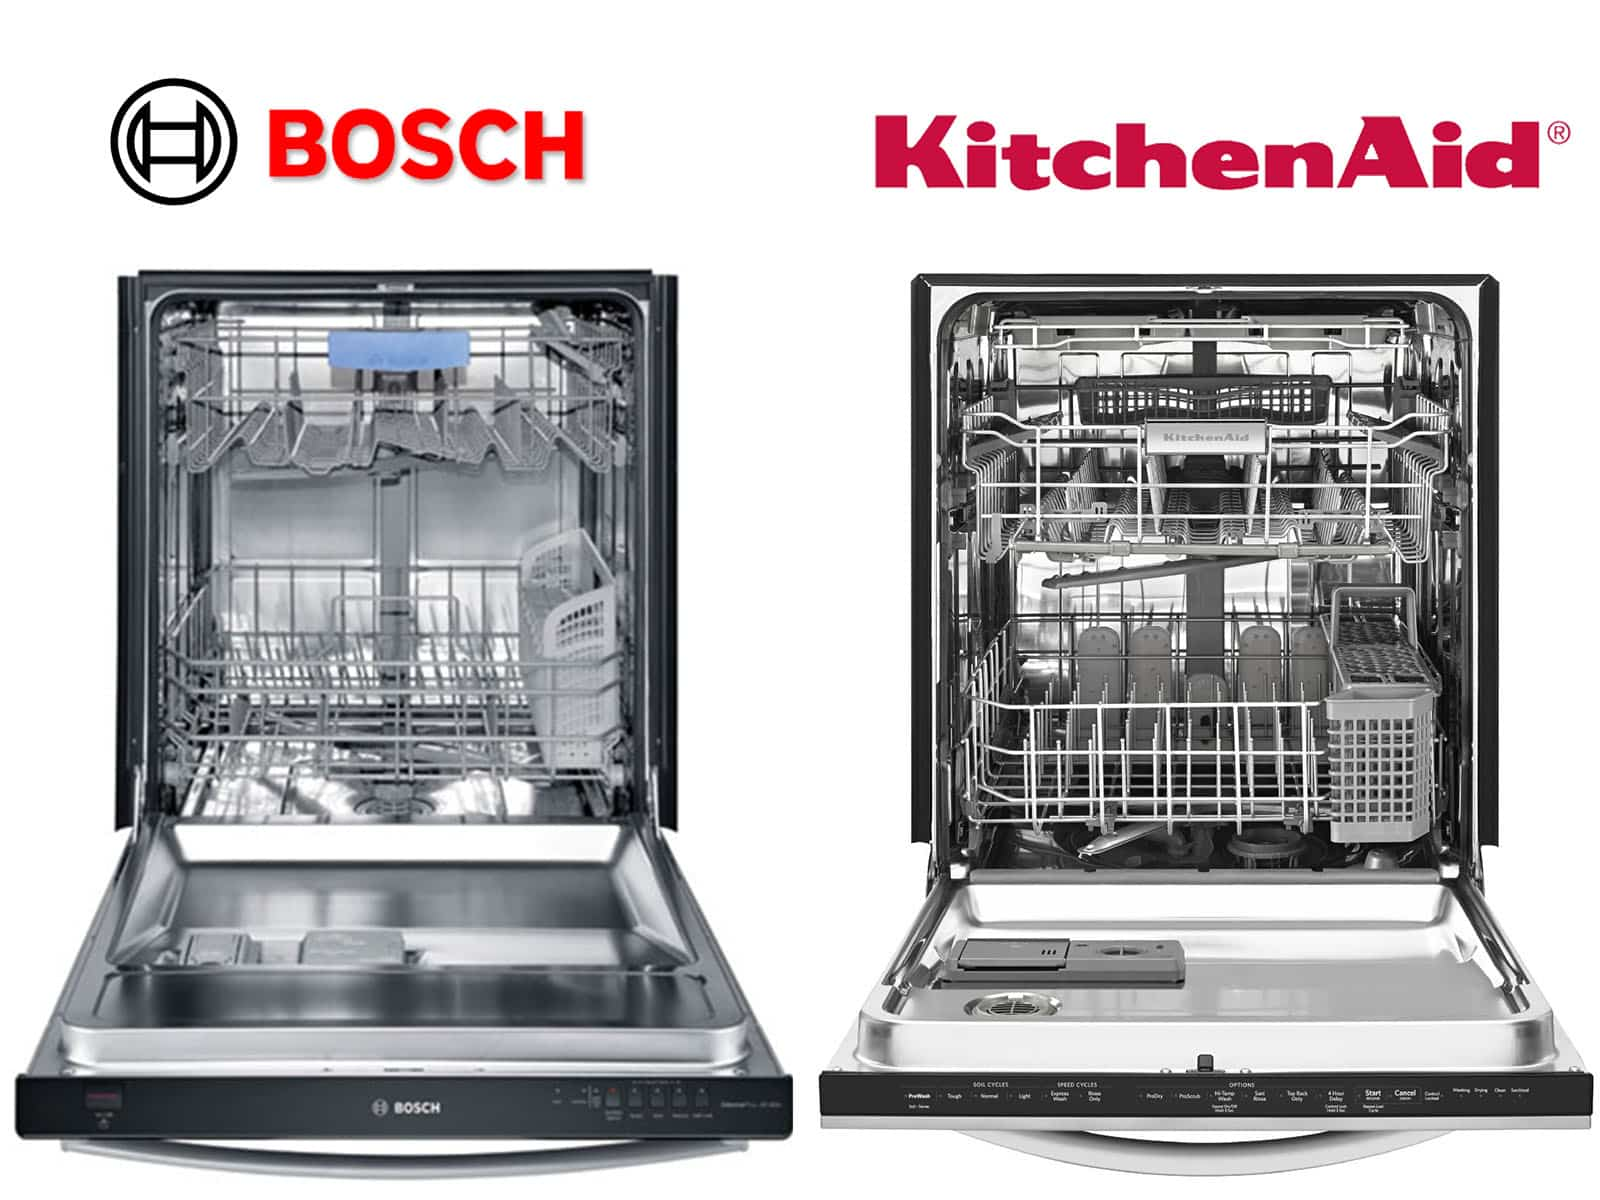 Exceptional Comparing KitchenAid Dishwashers To Bosch Dishwashers | Fredu0027s Appliance